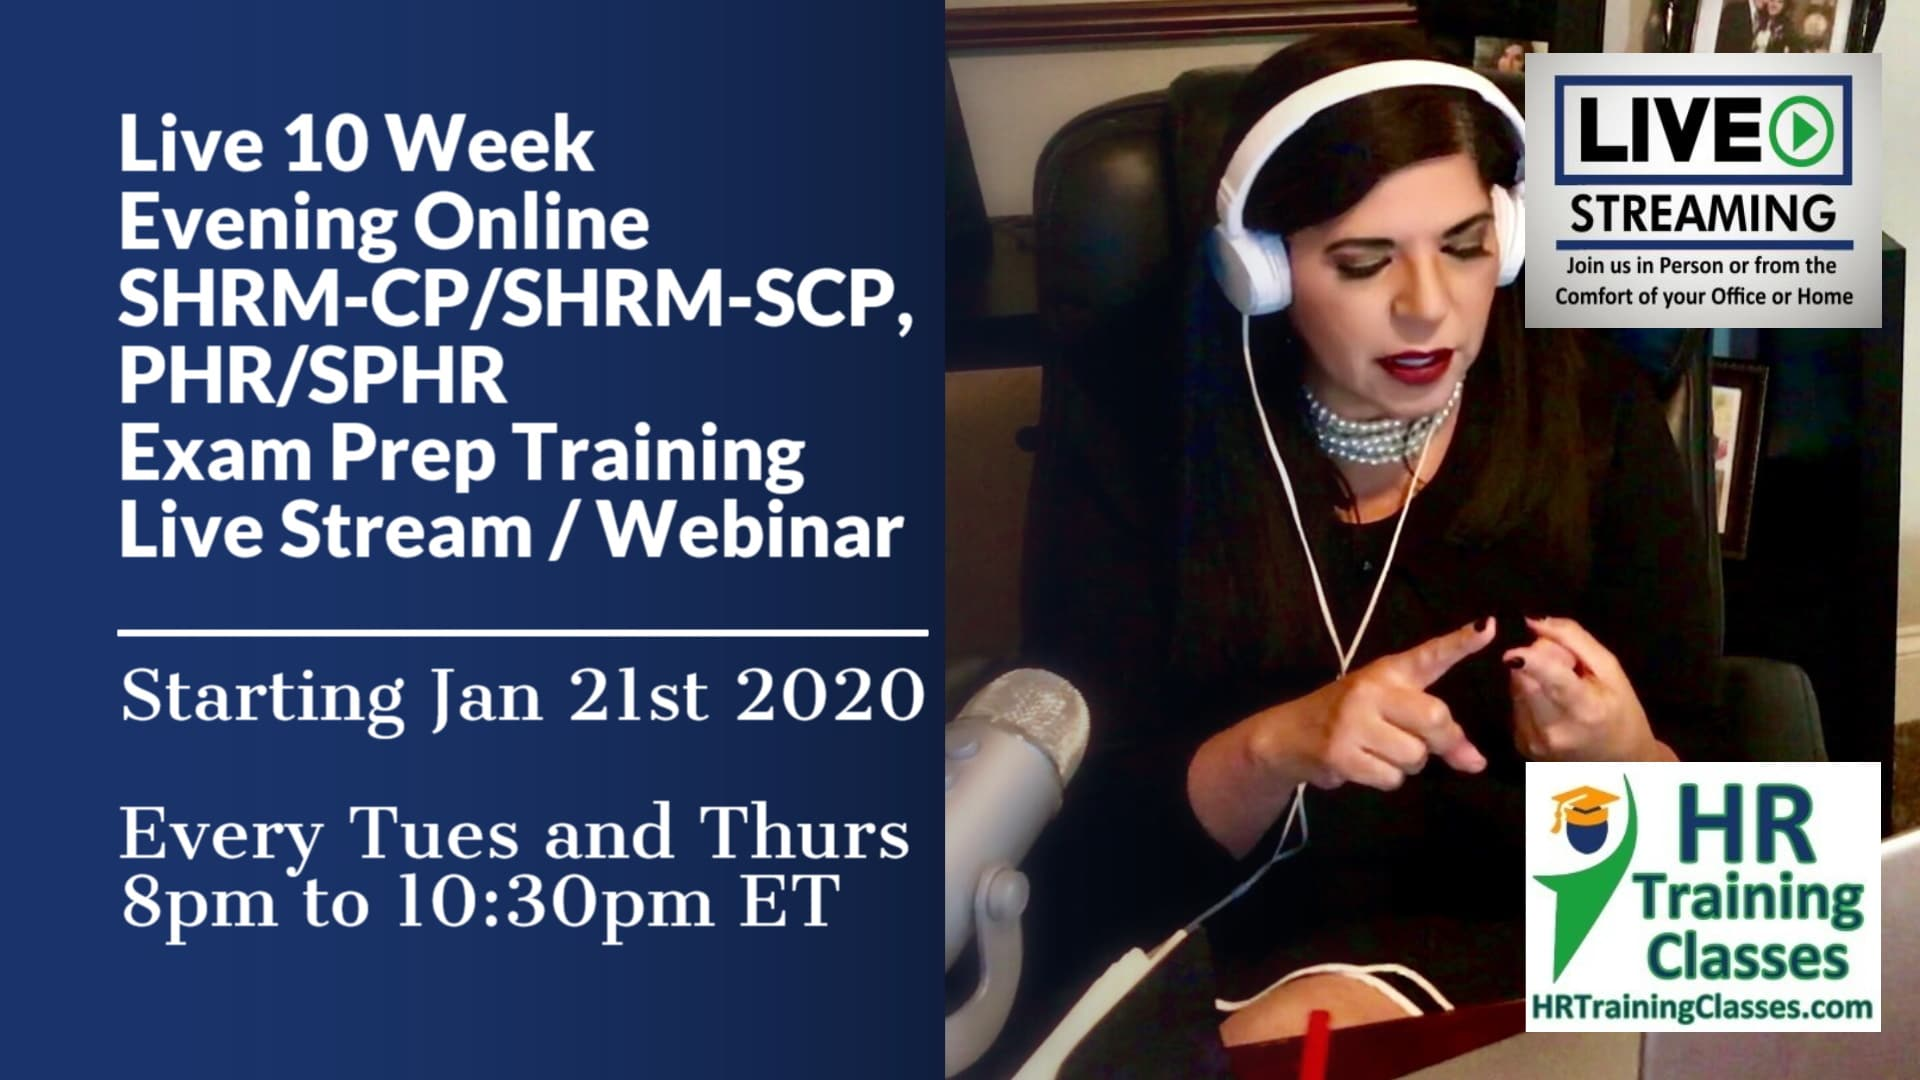 Live 10 Week Evening Online SHRM-CP, SHRM-SCP, PHR, SPHR Exam Prep training Course (Starts 1/21/2020)